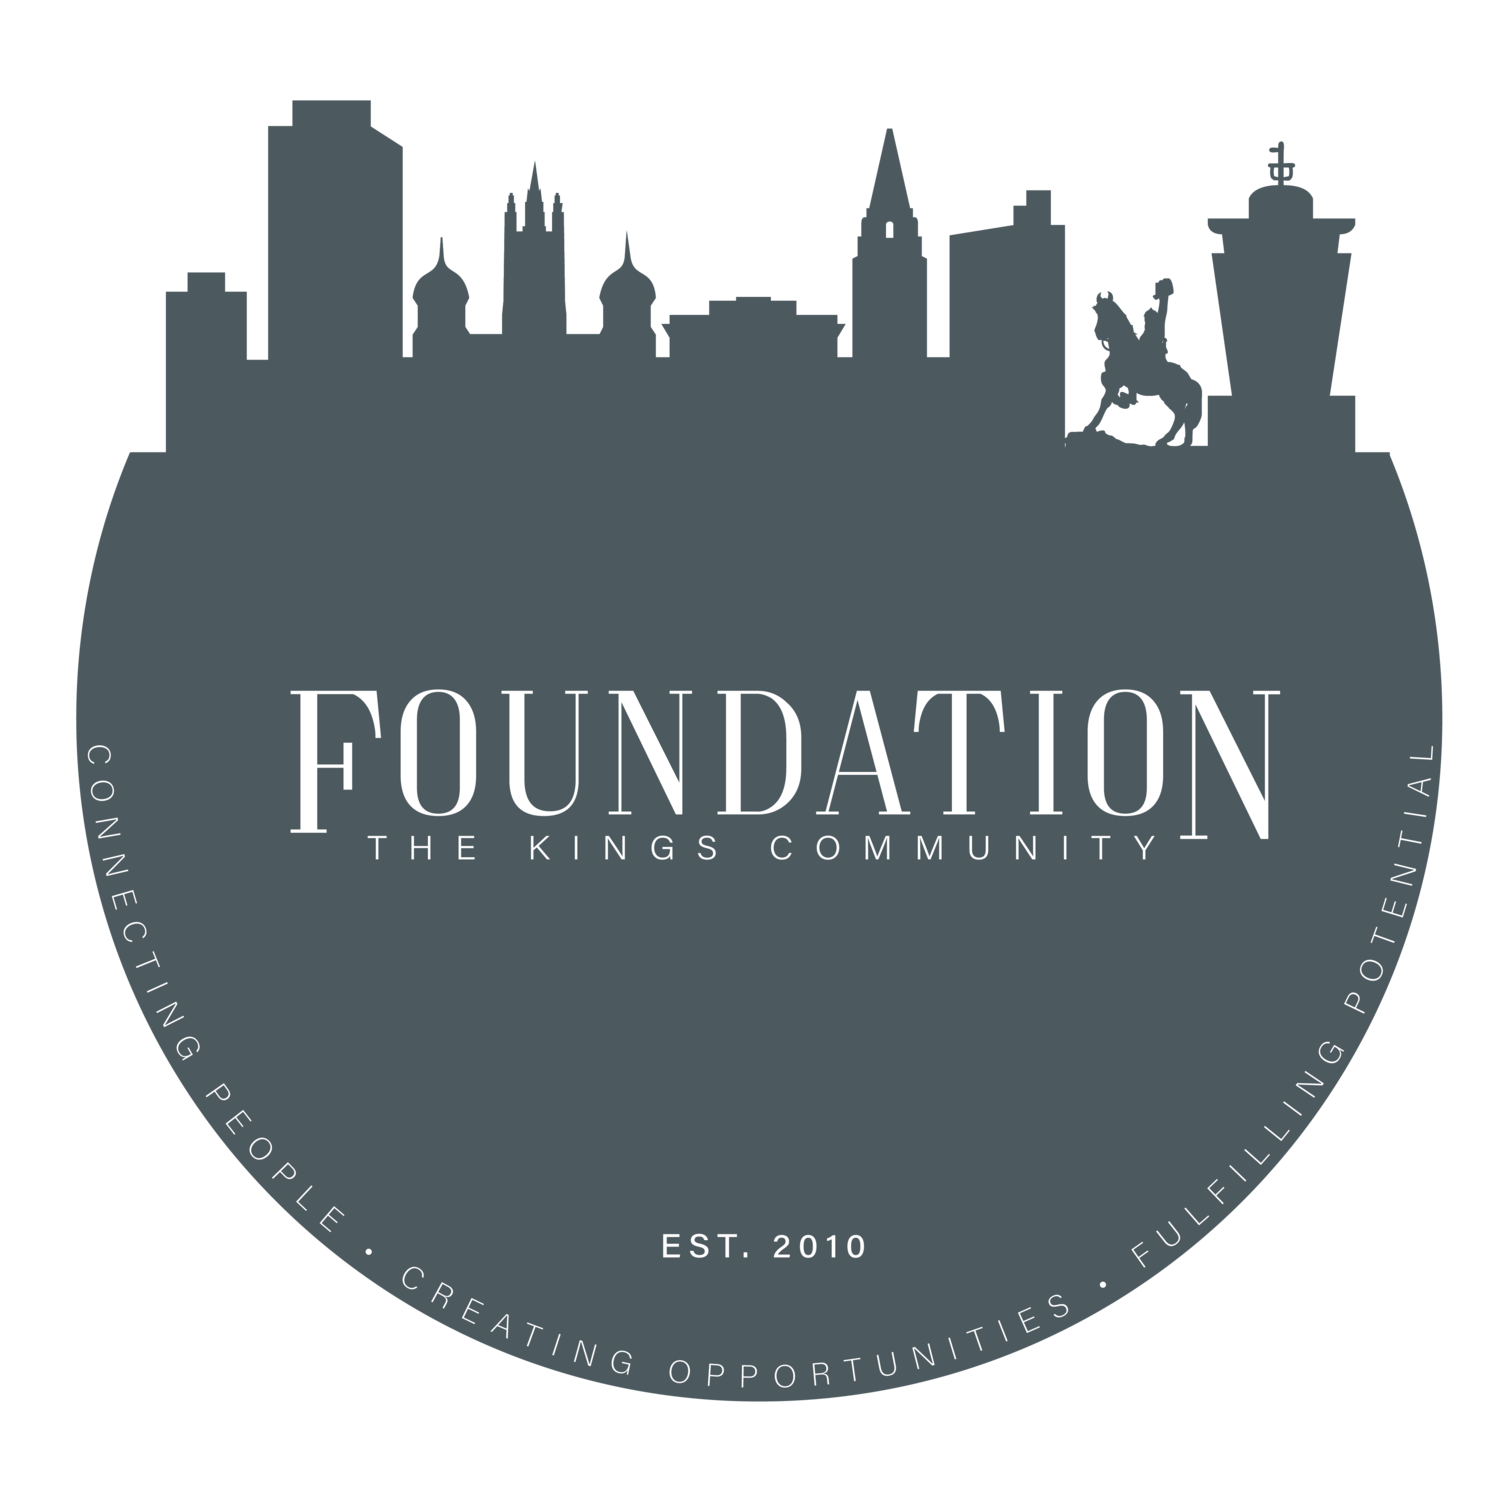 King's Community Foundation